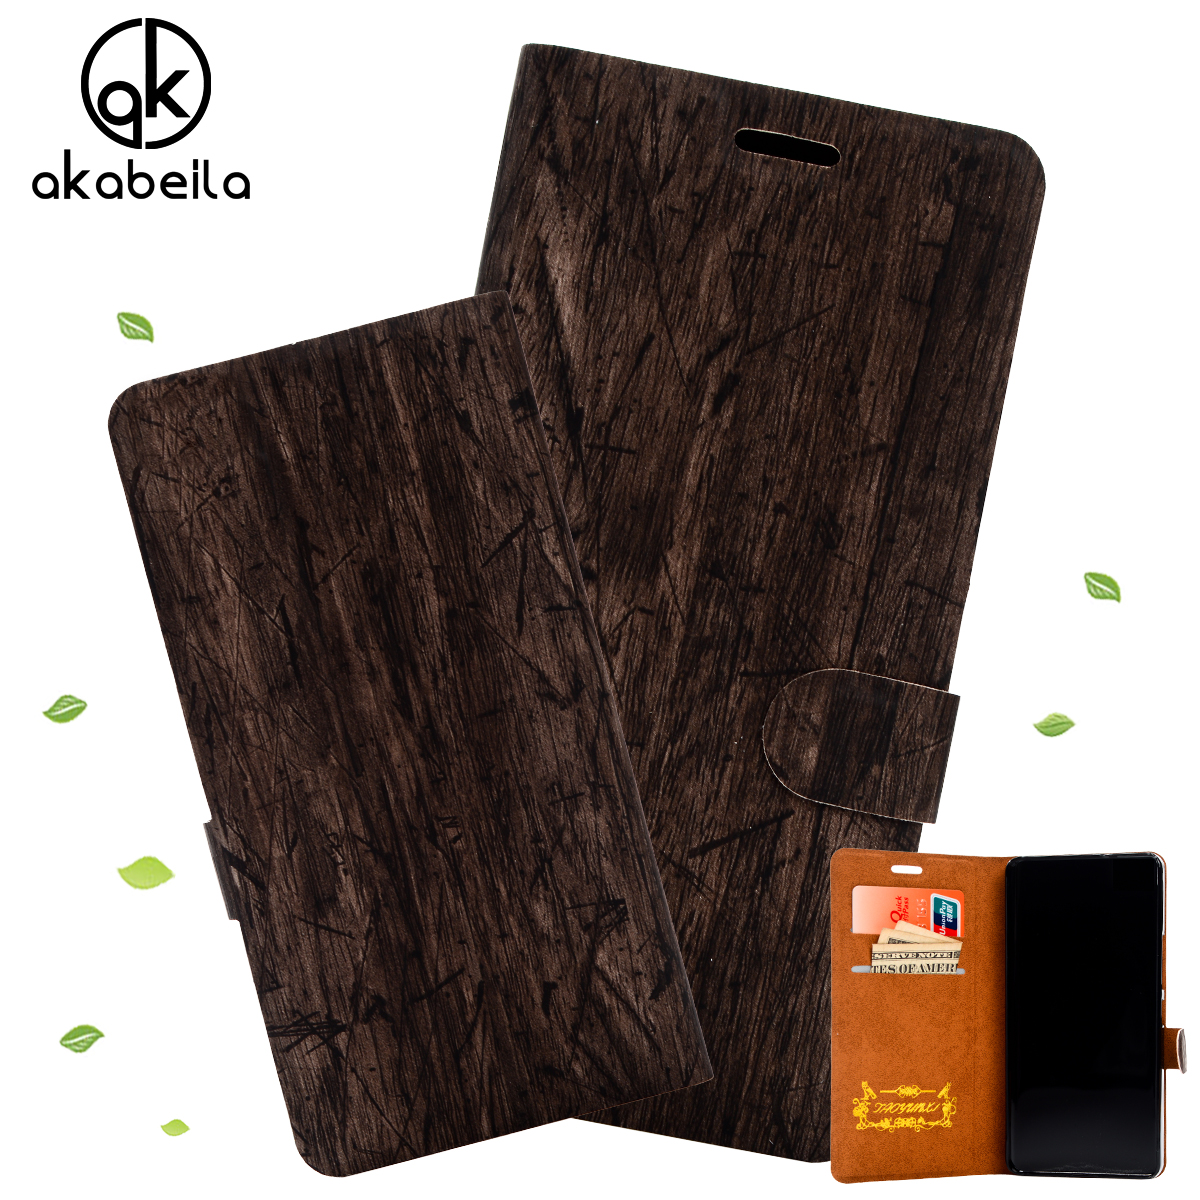 New Come Slim Wood Grain PU Leather Case for Xiaomi mi4i mi 4i X9 Wallet Style Fashion Flip Phone Cover 6 Colors Available